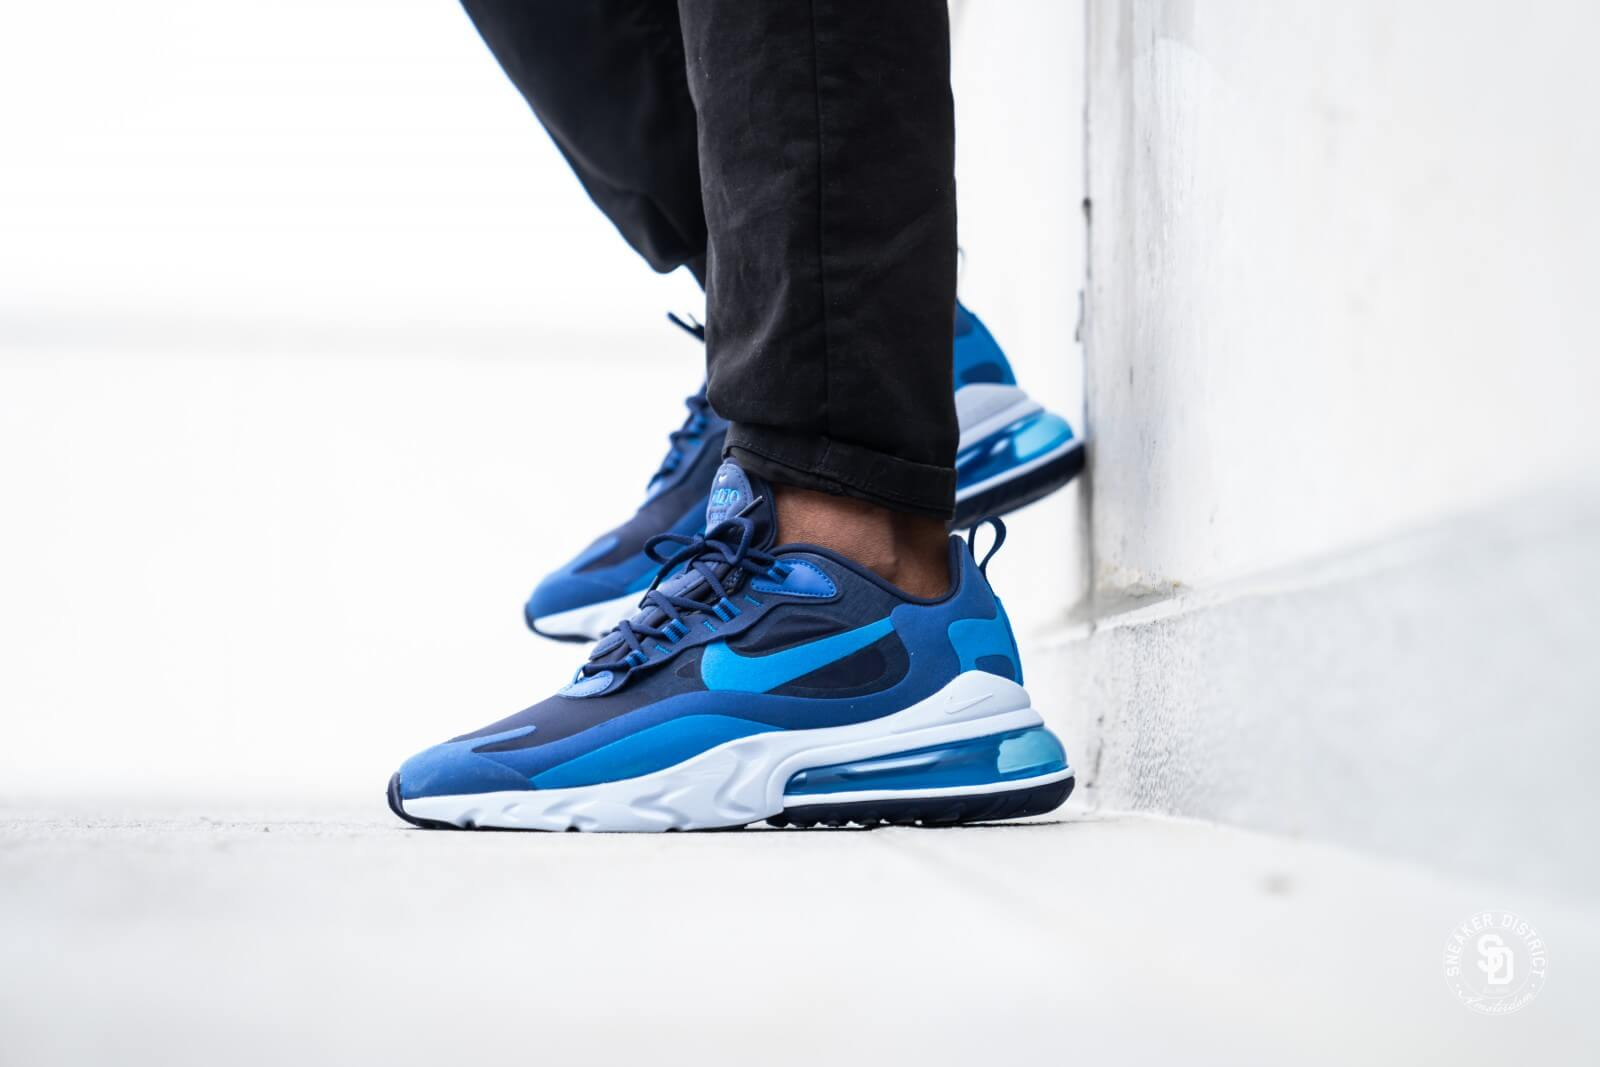 Nike Air Max 270 React Blue Void/Photo Blue - AO4971-400